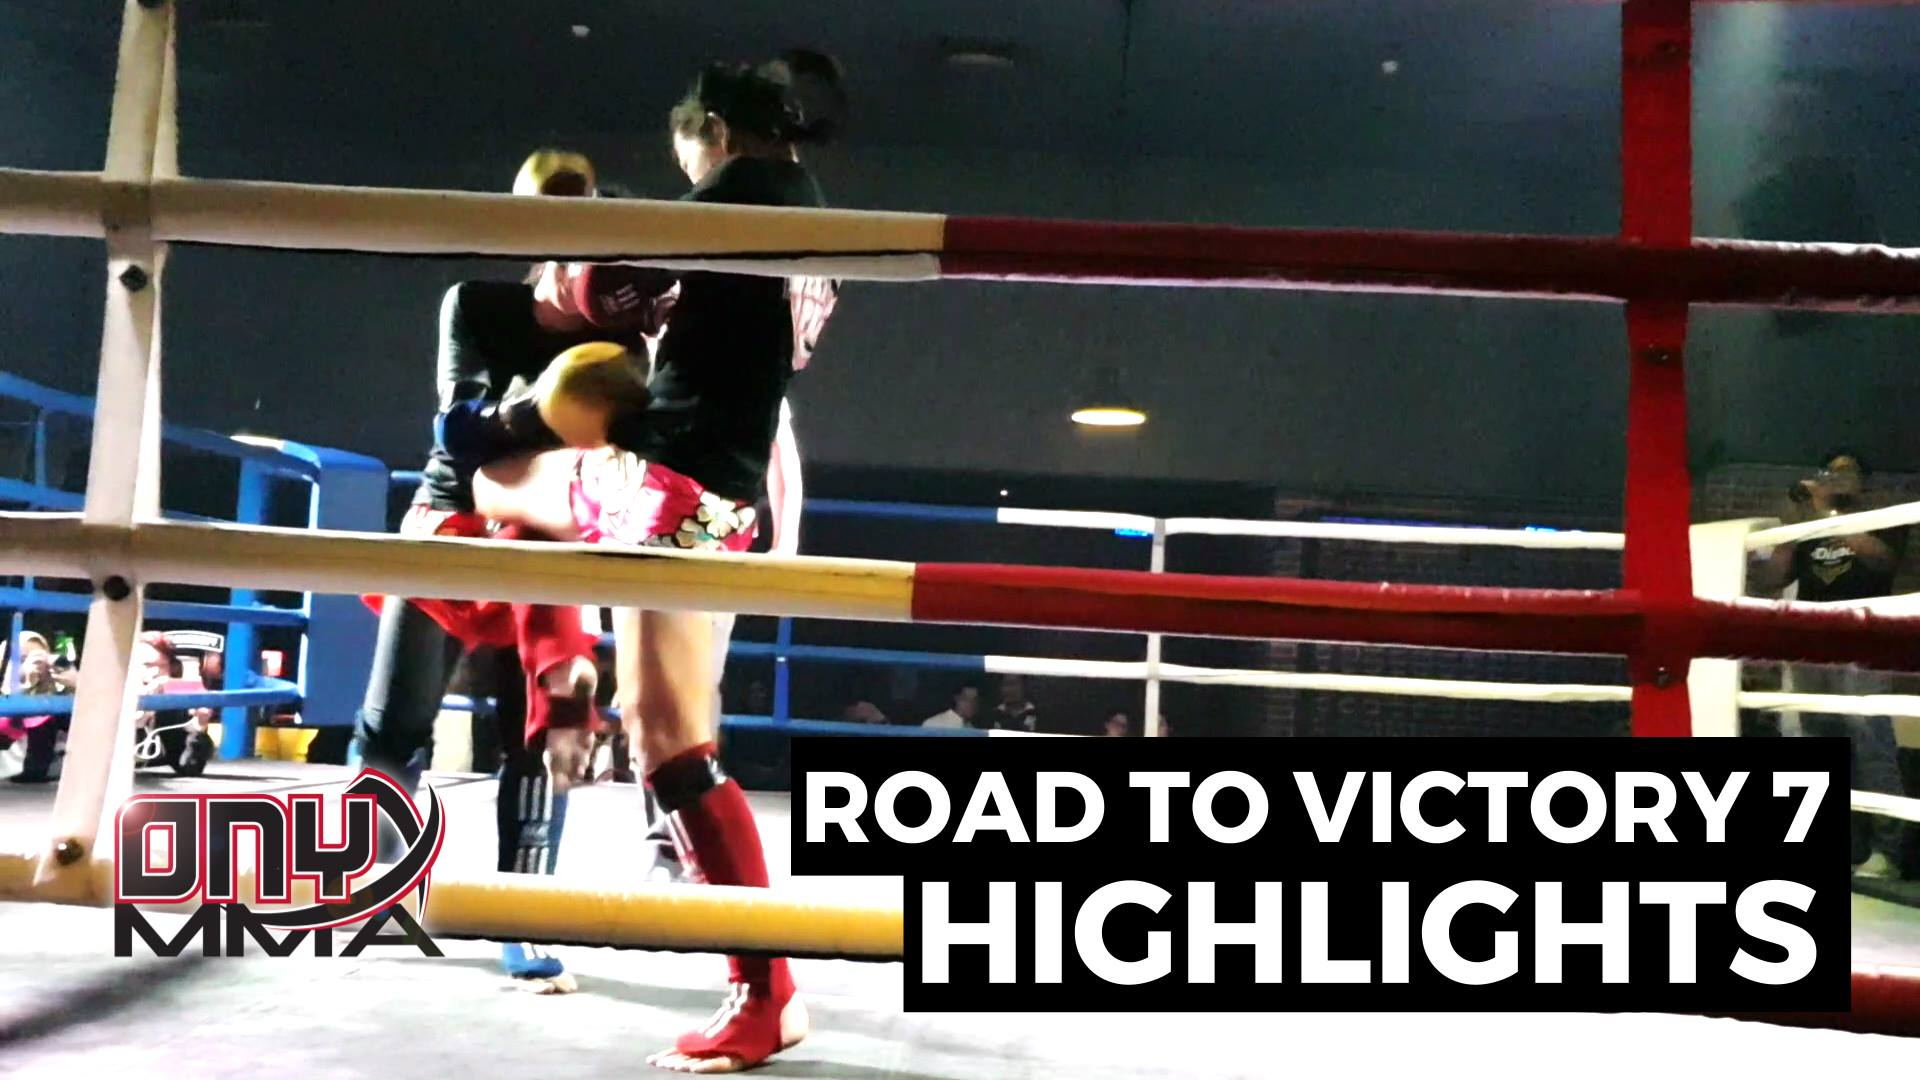 Road To Victory 7 Highlights